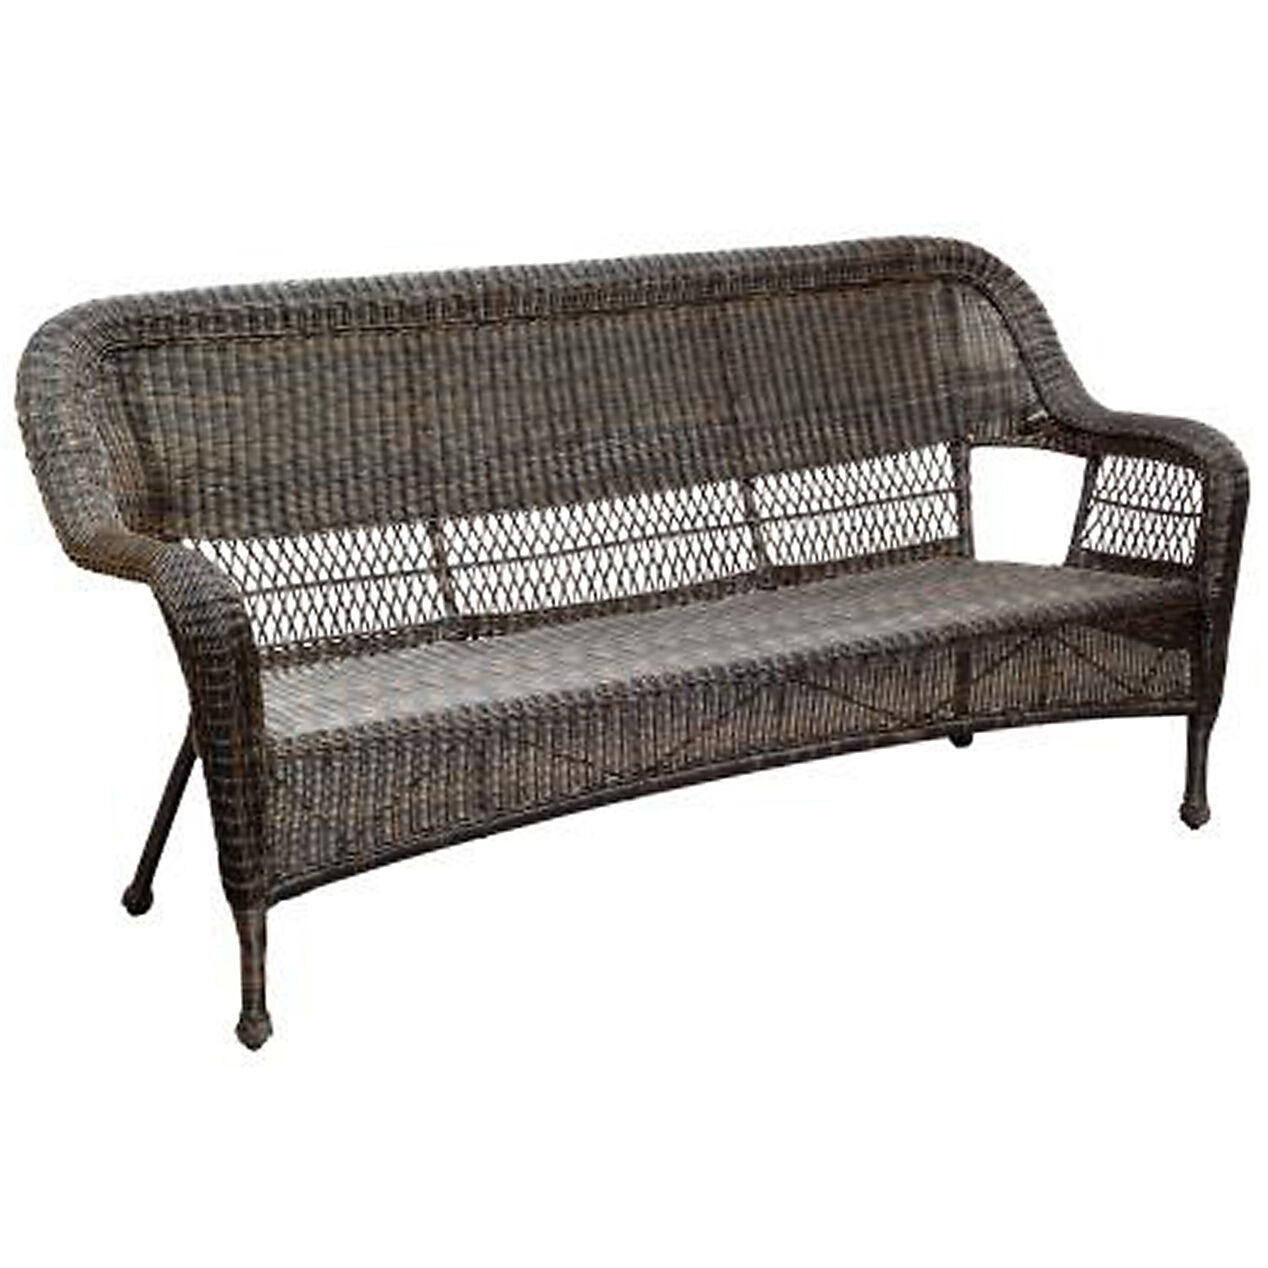 Dark brown wicker outdoor patio sofa at home Garden loveseat